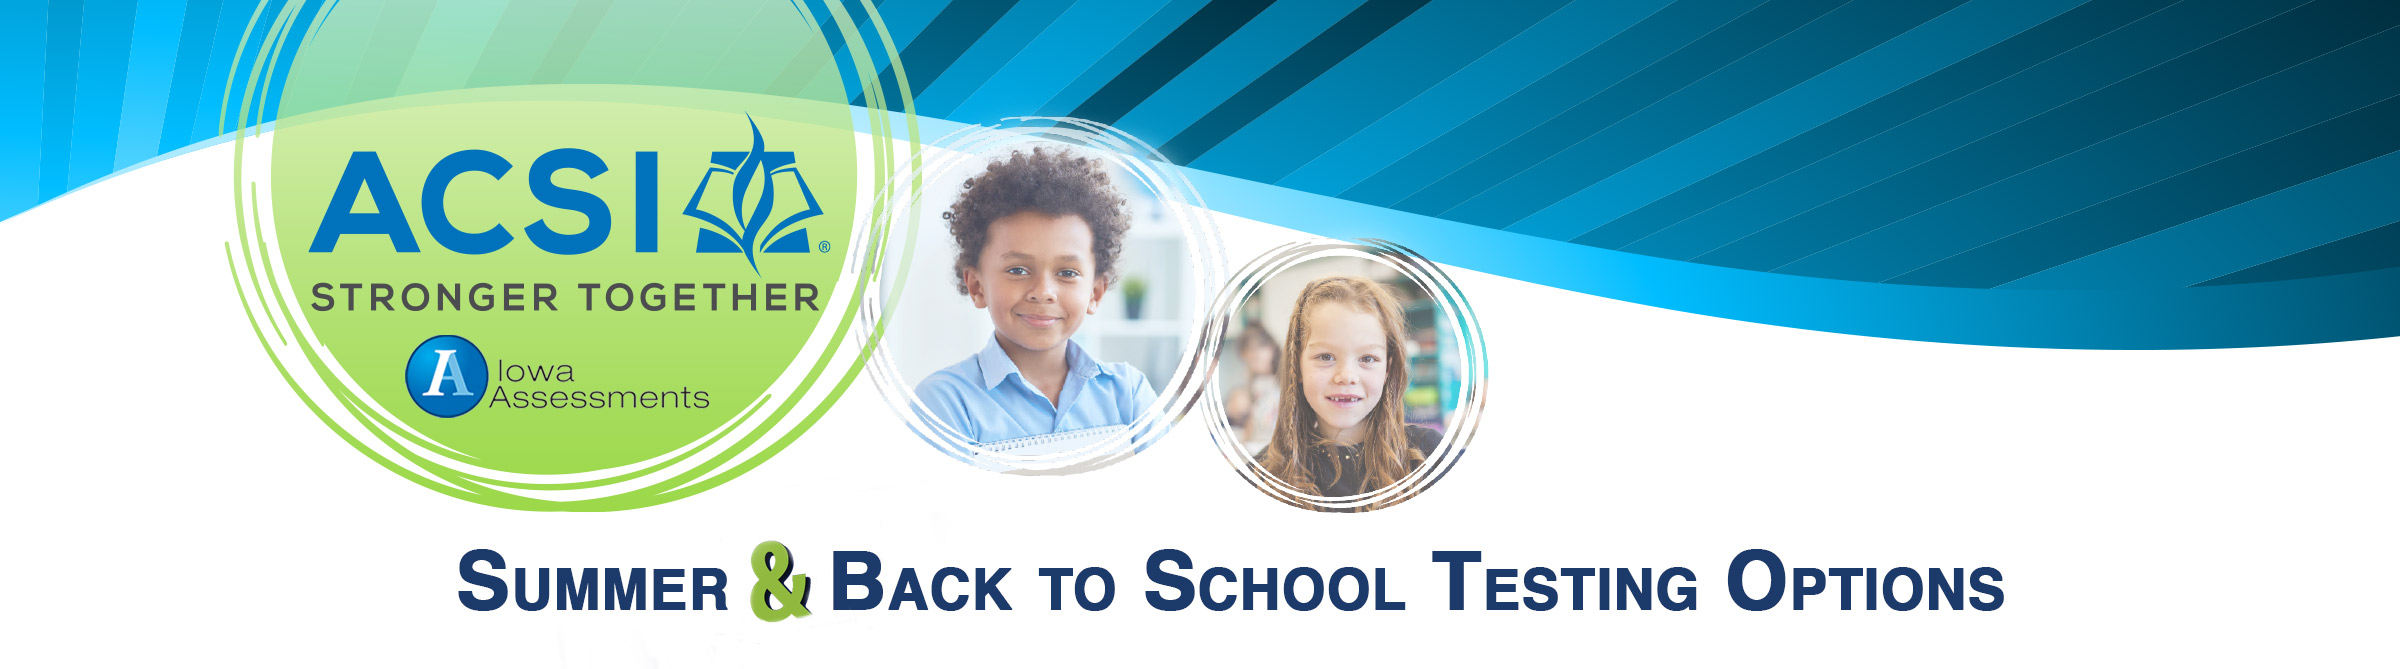 Iowa Assessments Summer and Back to School Testing Options